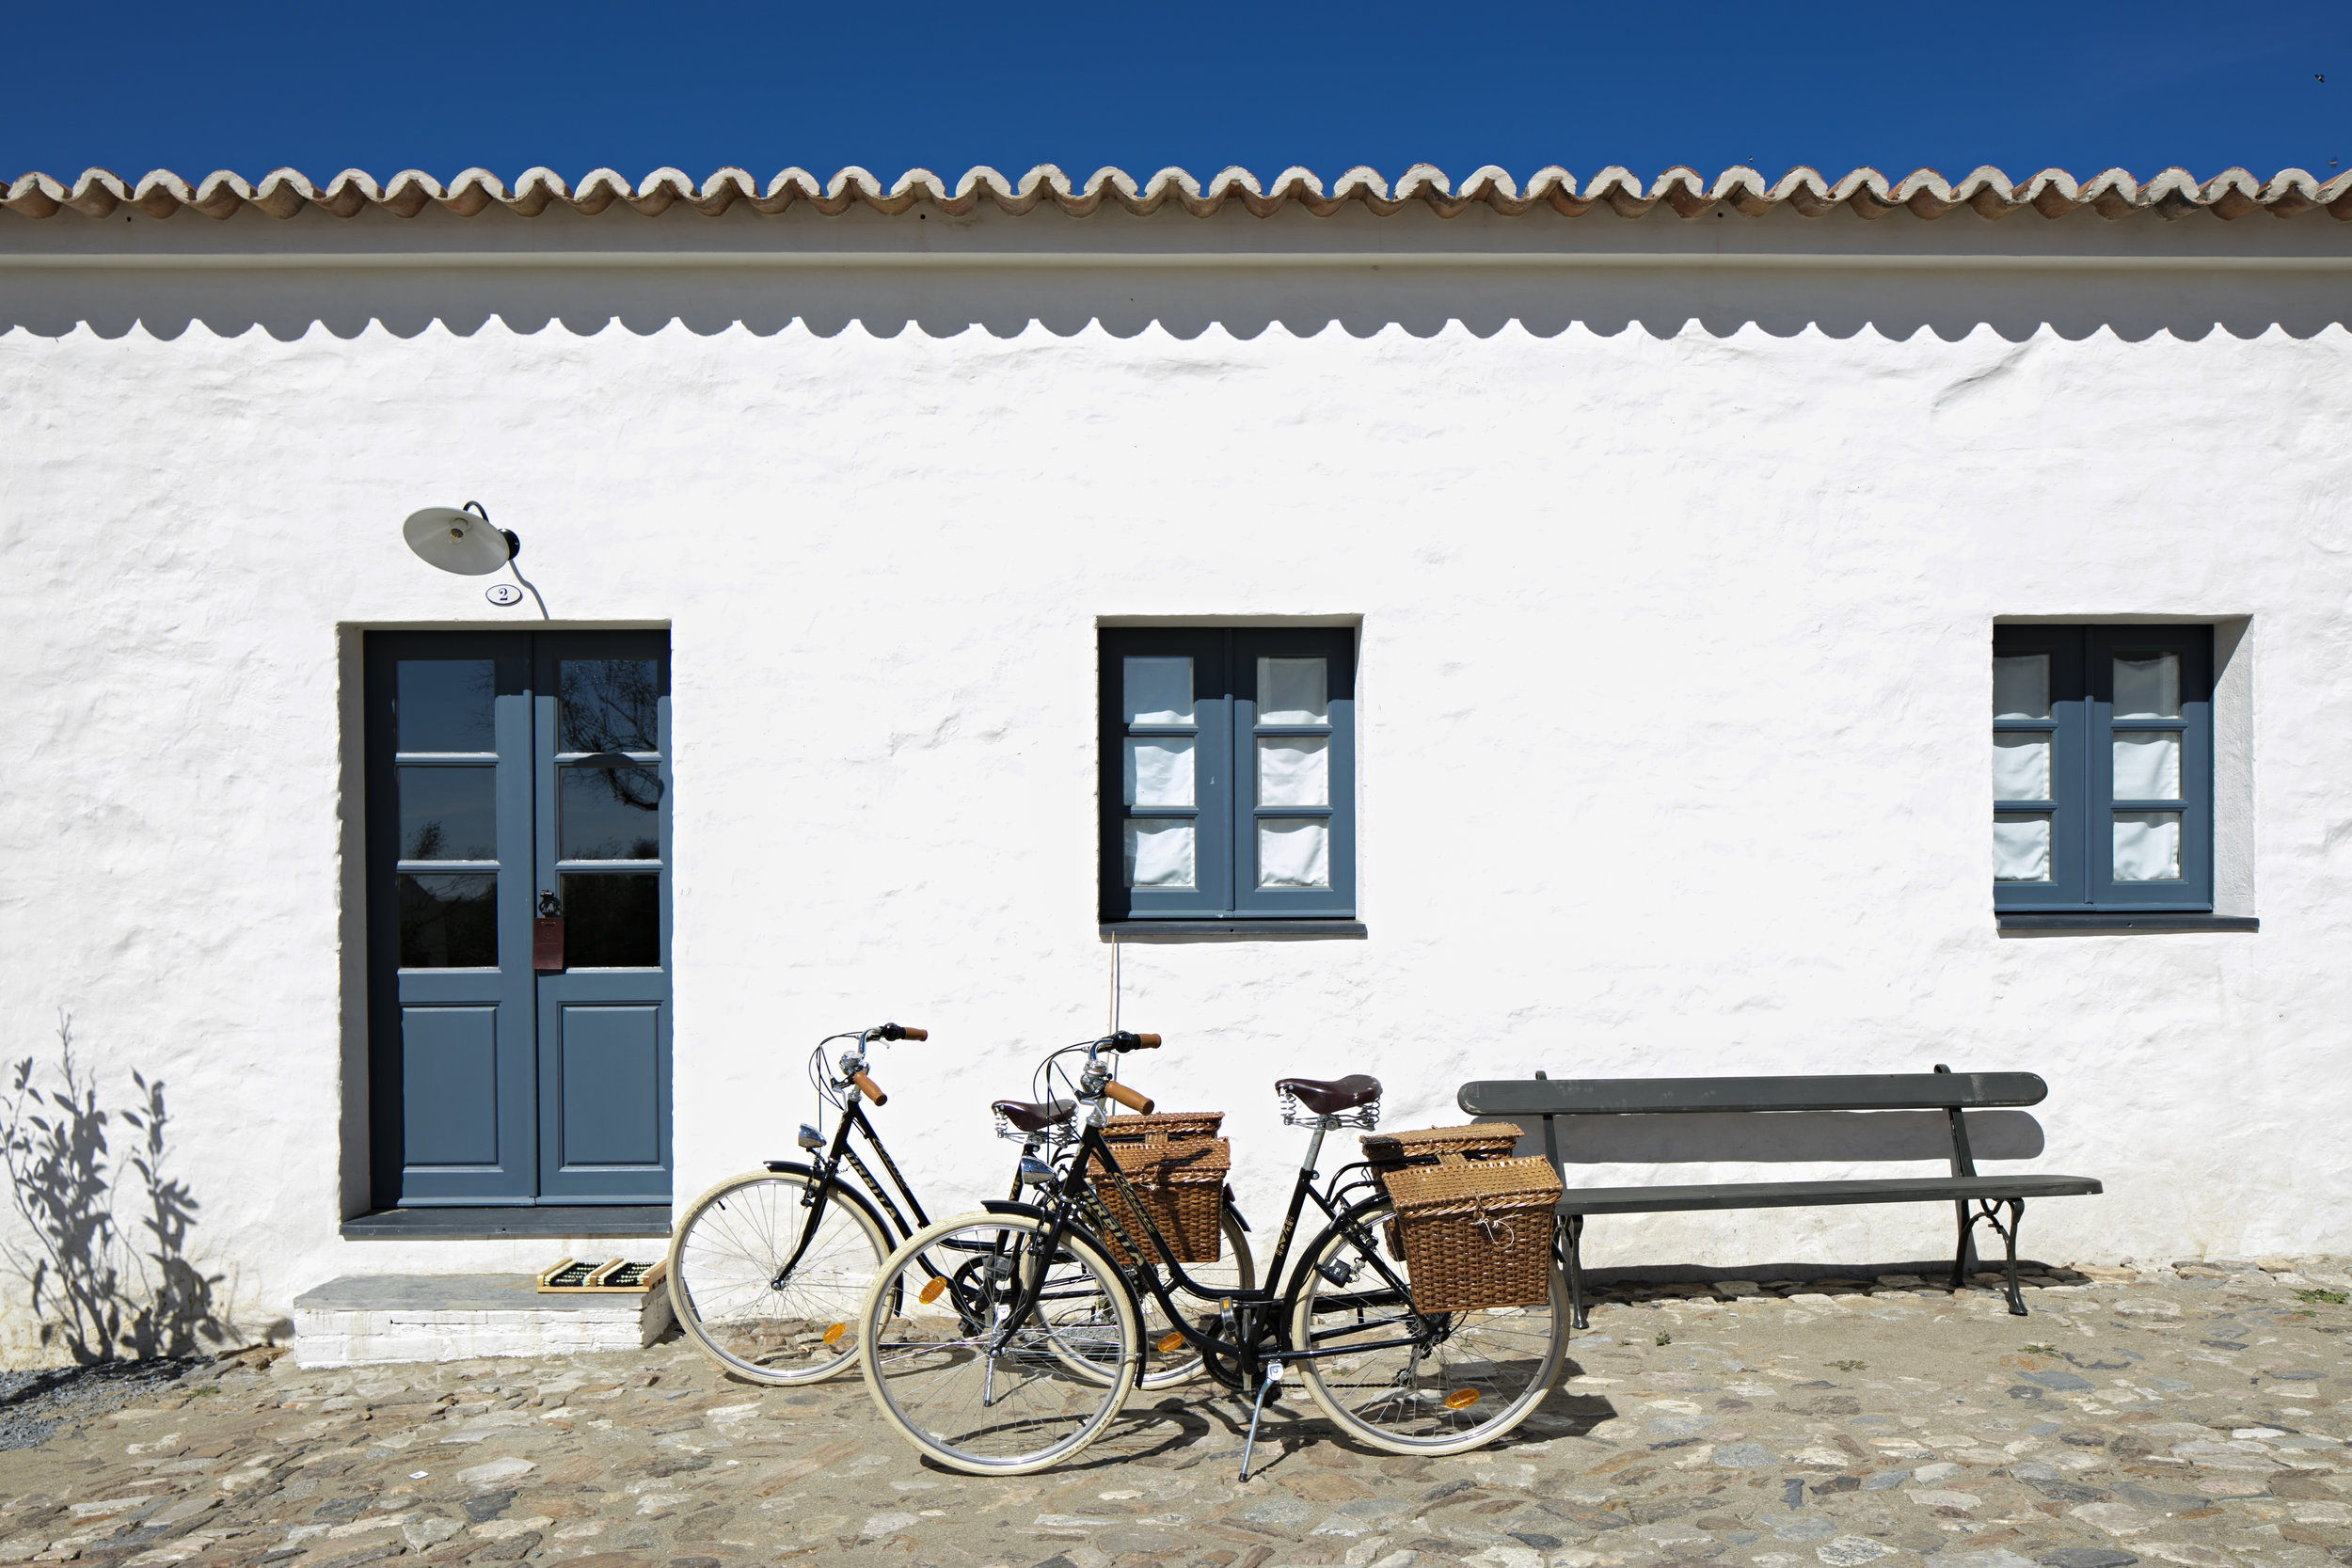 BICYCLES_HERDADE_BARROCAL_010416_4382.jpg